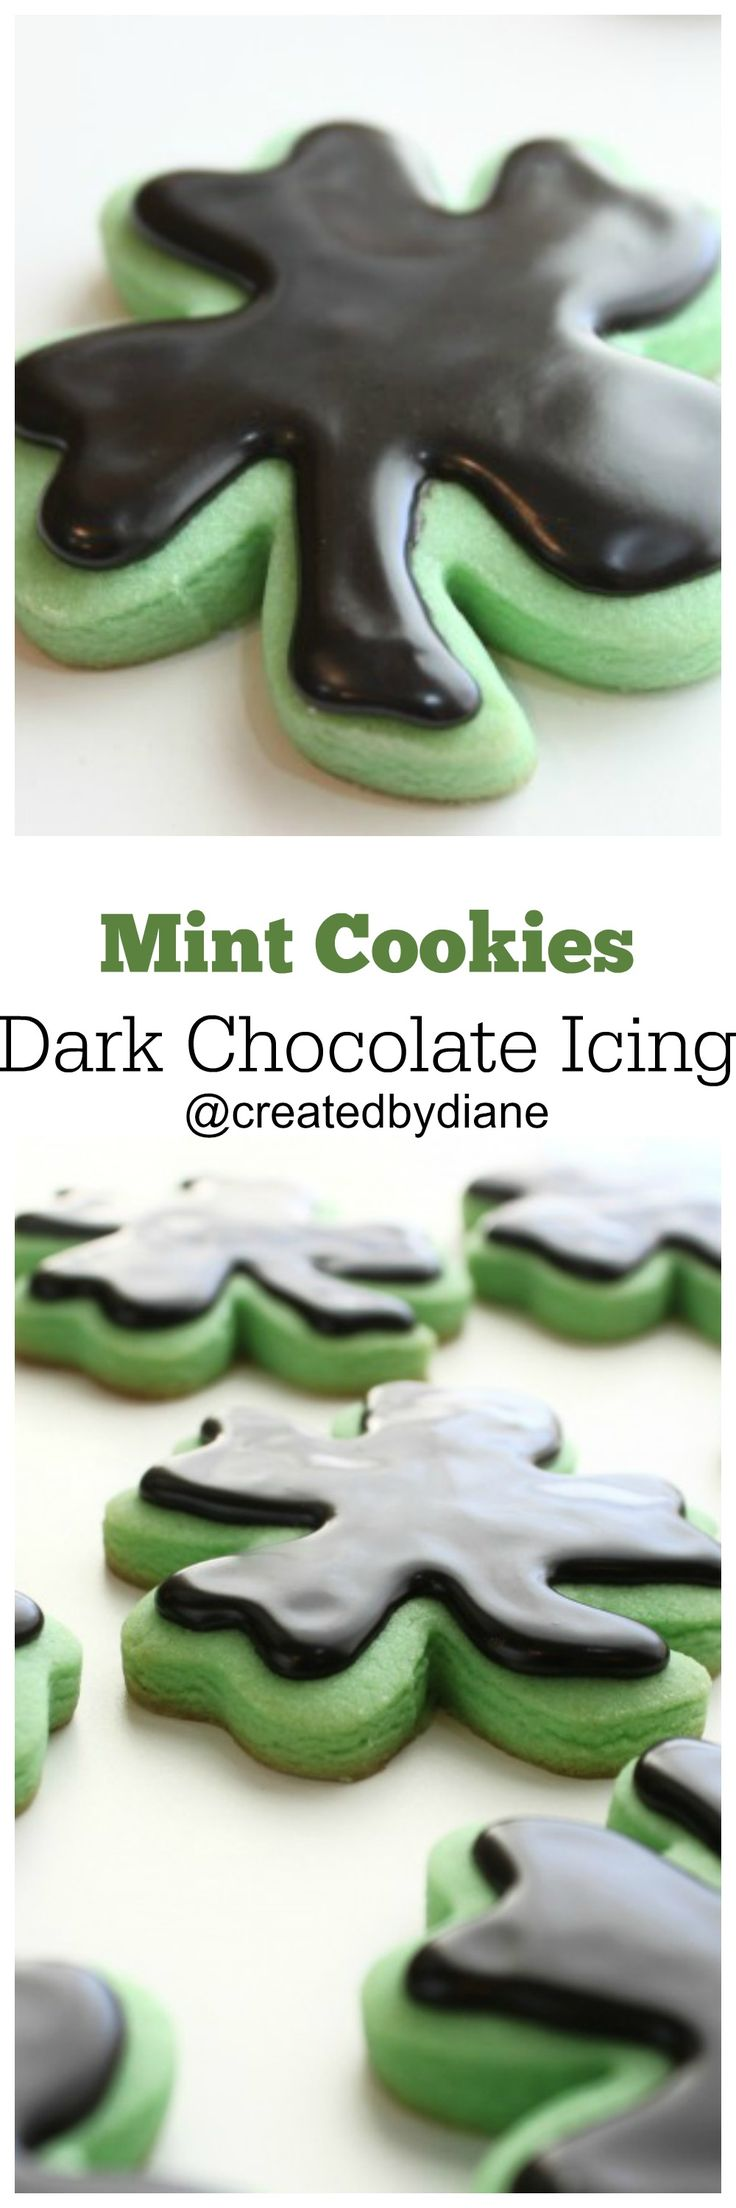 """Easy to make """"Thin Mint"""" Cookies, with Dark Chocolate Glaze Icing. Mint green cut out sugar cookies with a dark chocolate icing that is smooth and delicious. www.createdby-diane.com"""